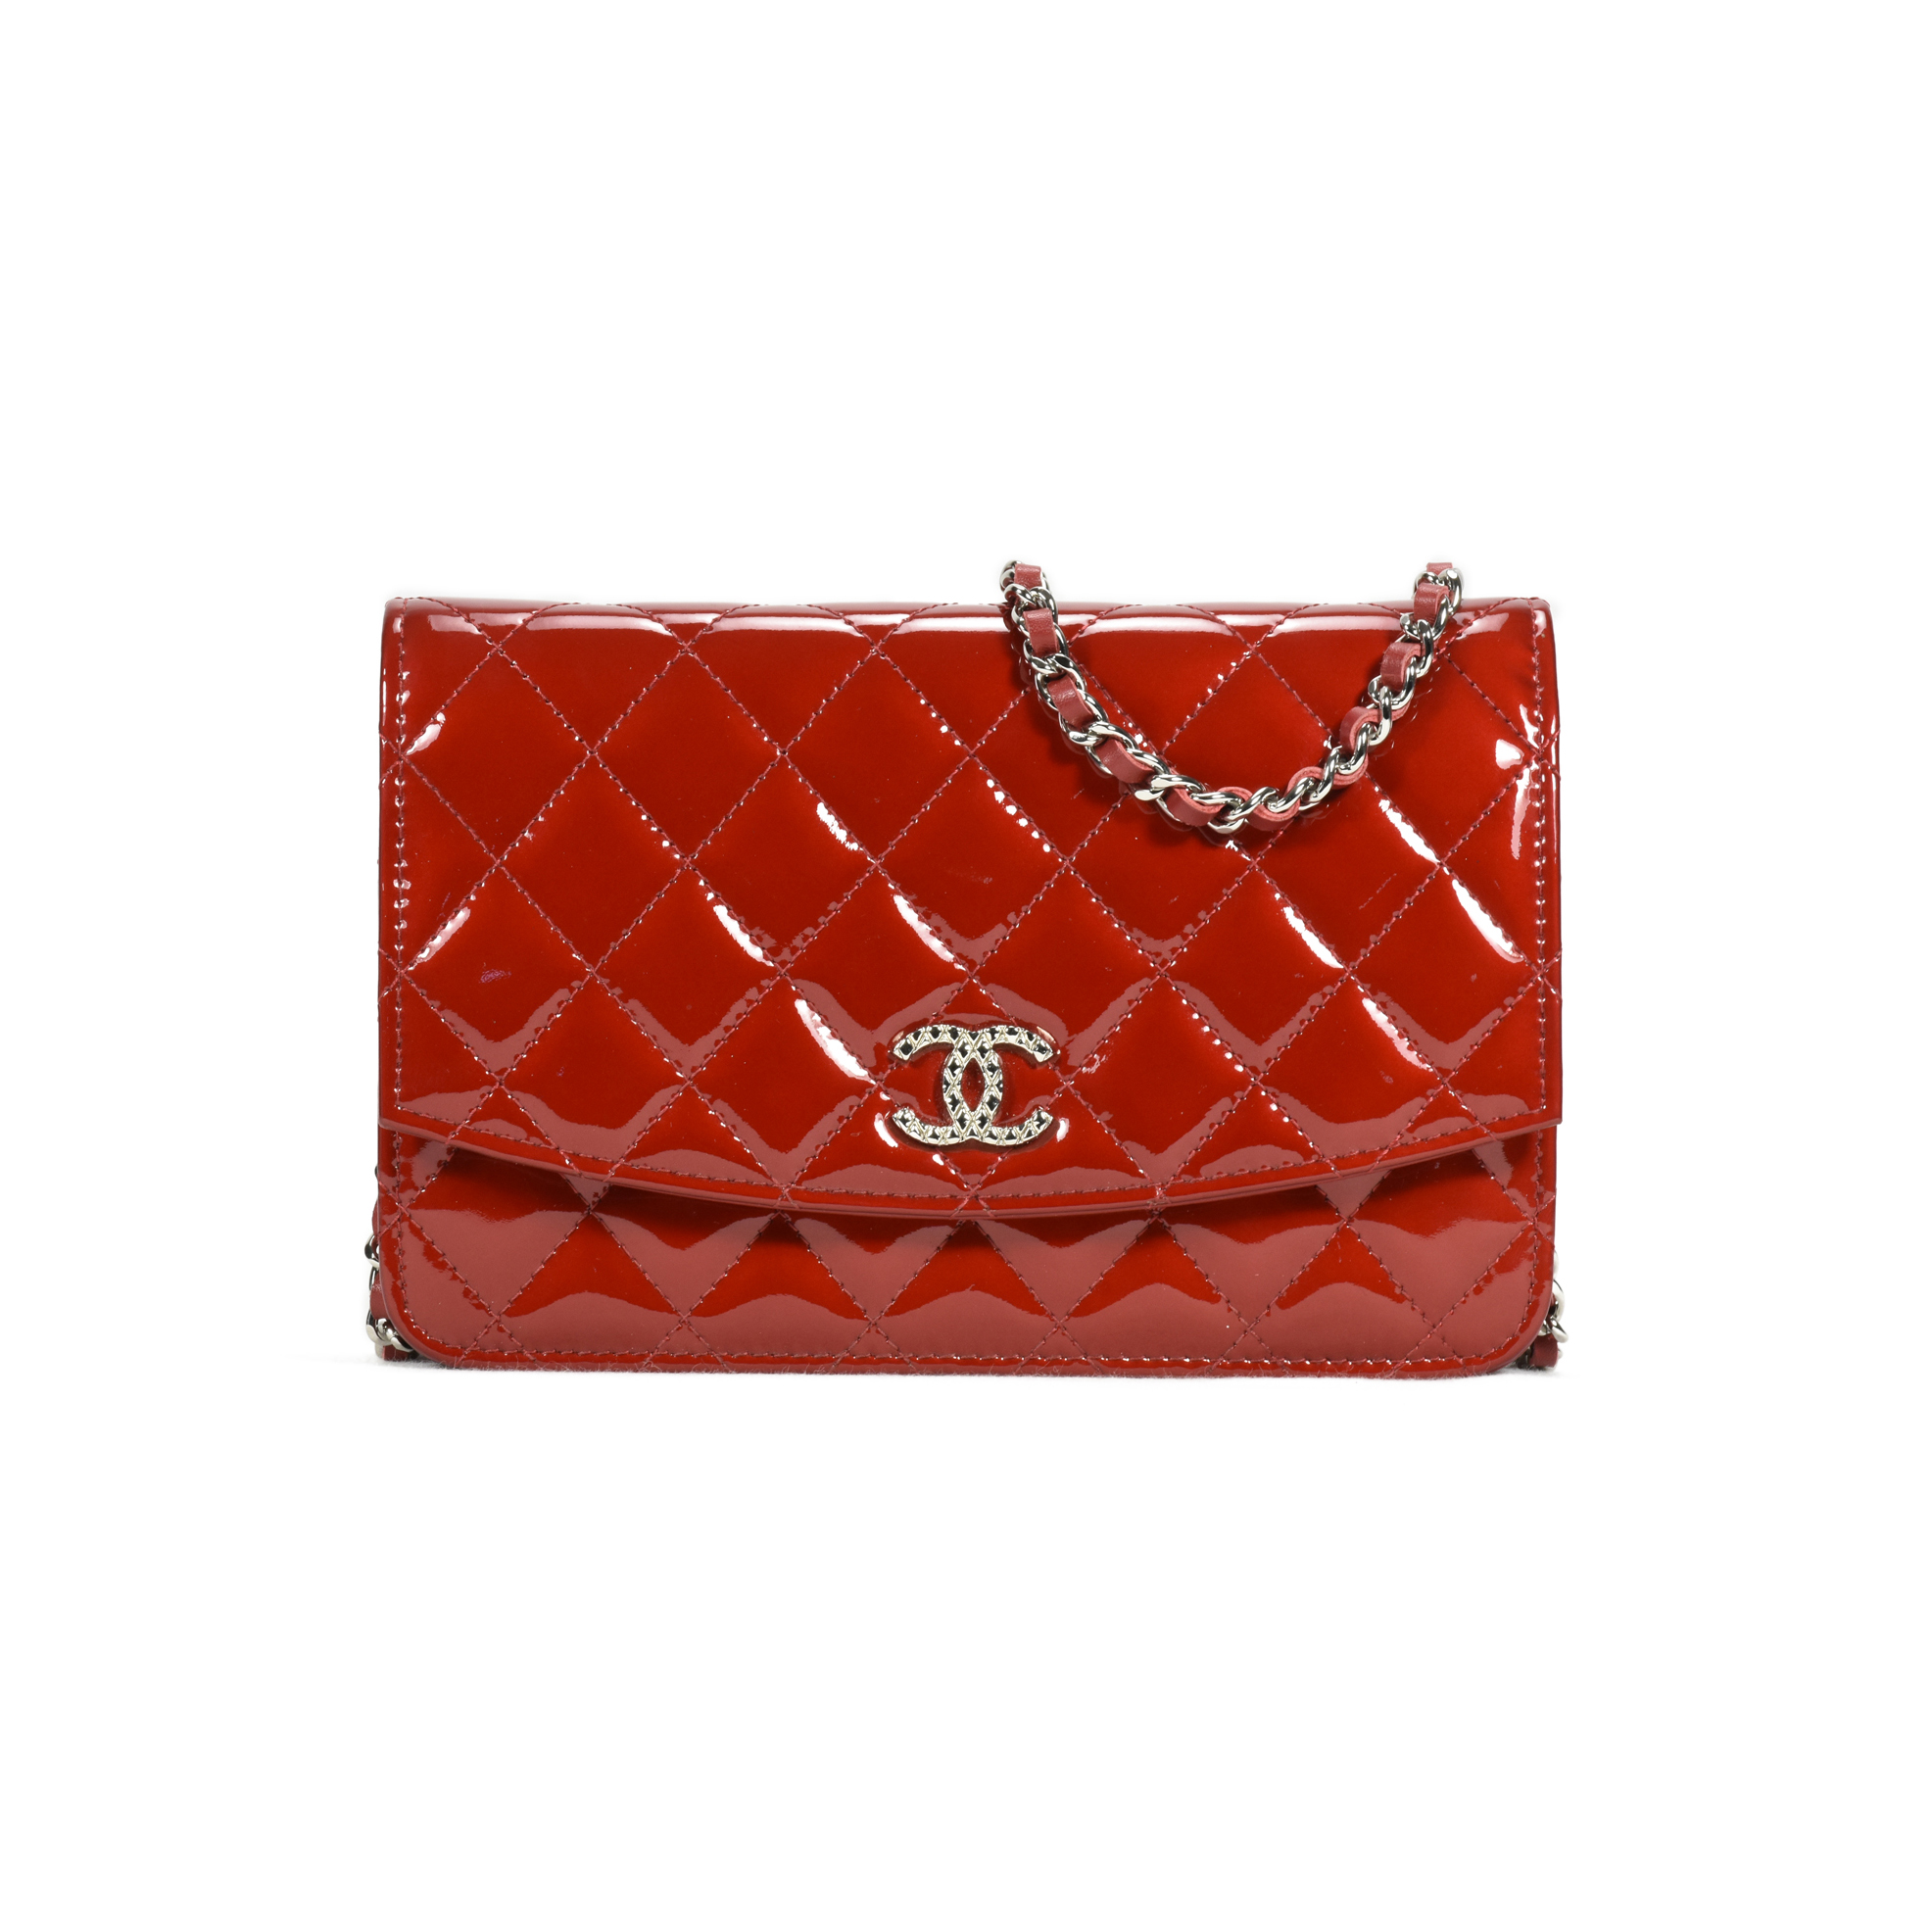 2eb497fb74f28a Authentic Second Hand Chanel Patent Brilliant Wallet on Chain  (PSS-240-00171) | THE FIFTH COLLECTION